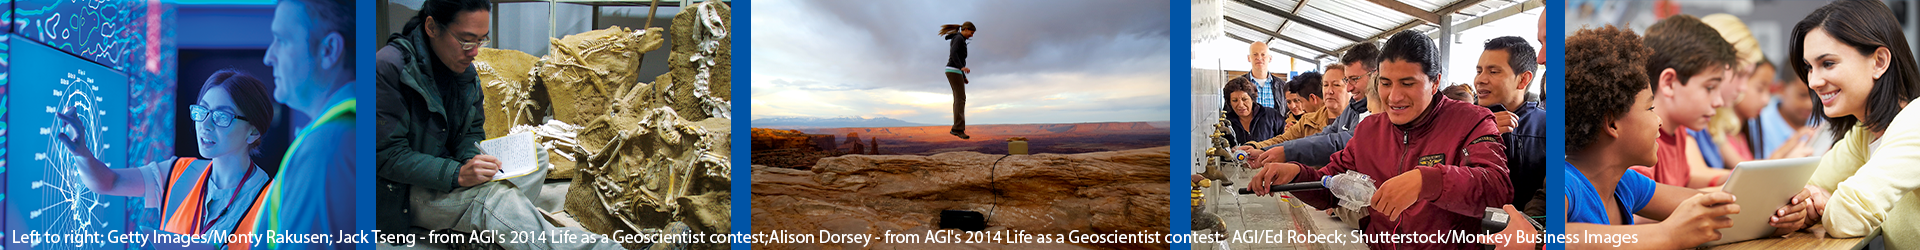 AGI supports teaching, training and professional geoscience activities.